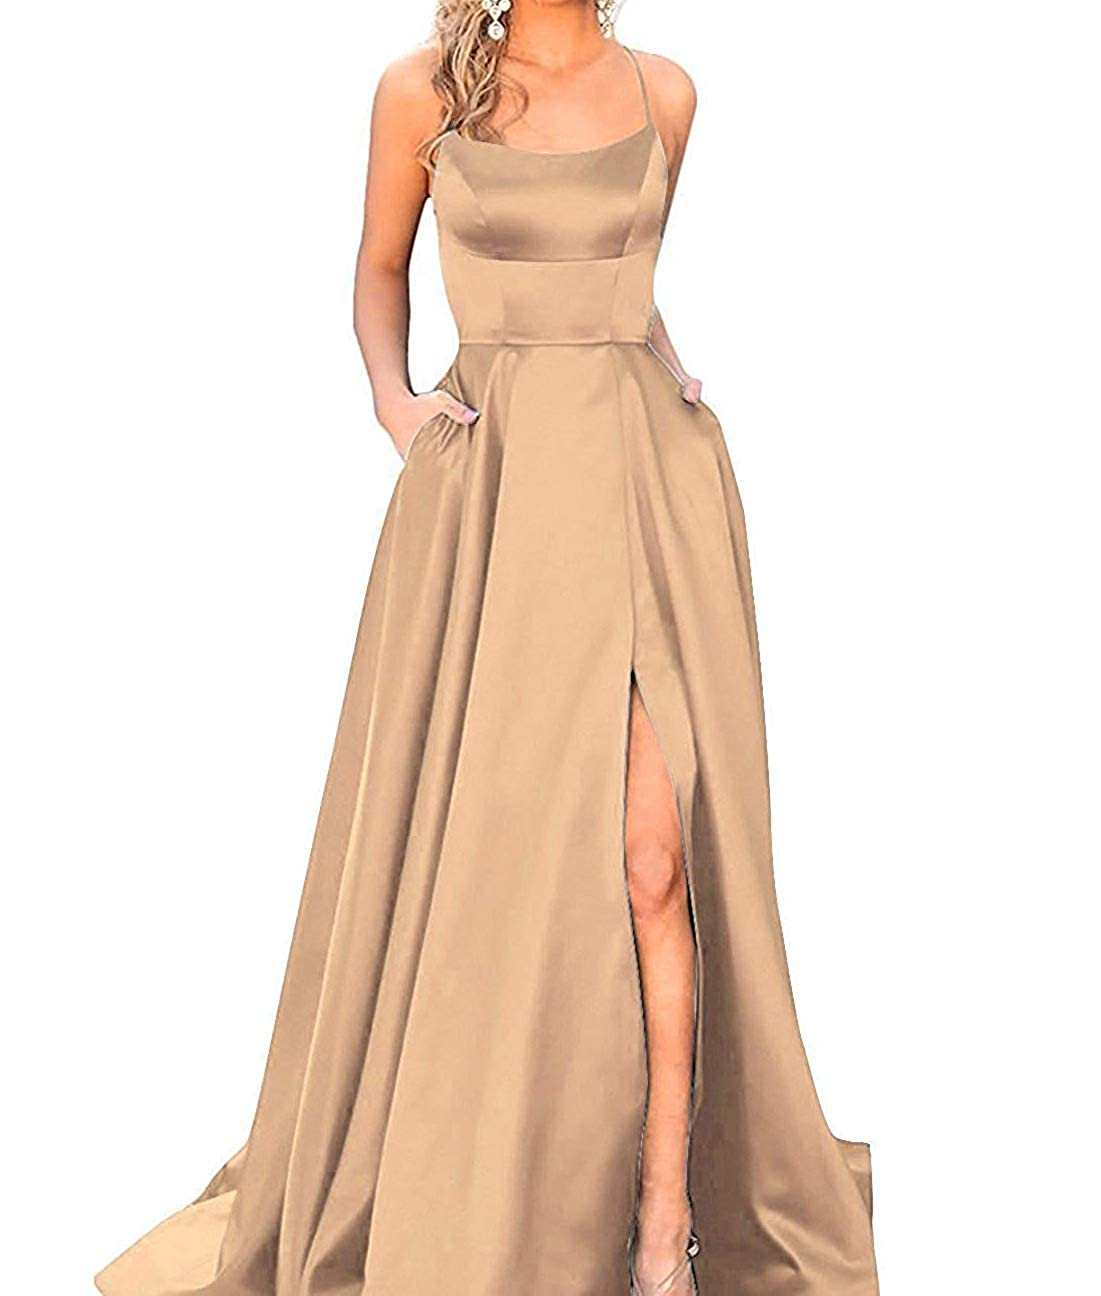 Champagne Fanciest Women's Halter Slit Satin Prom Dresses Long Backless Evening Formal Gowns